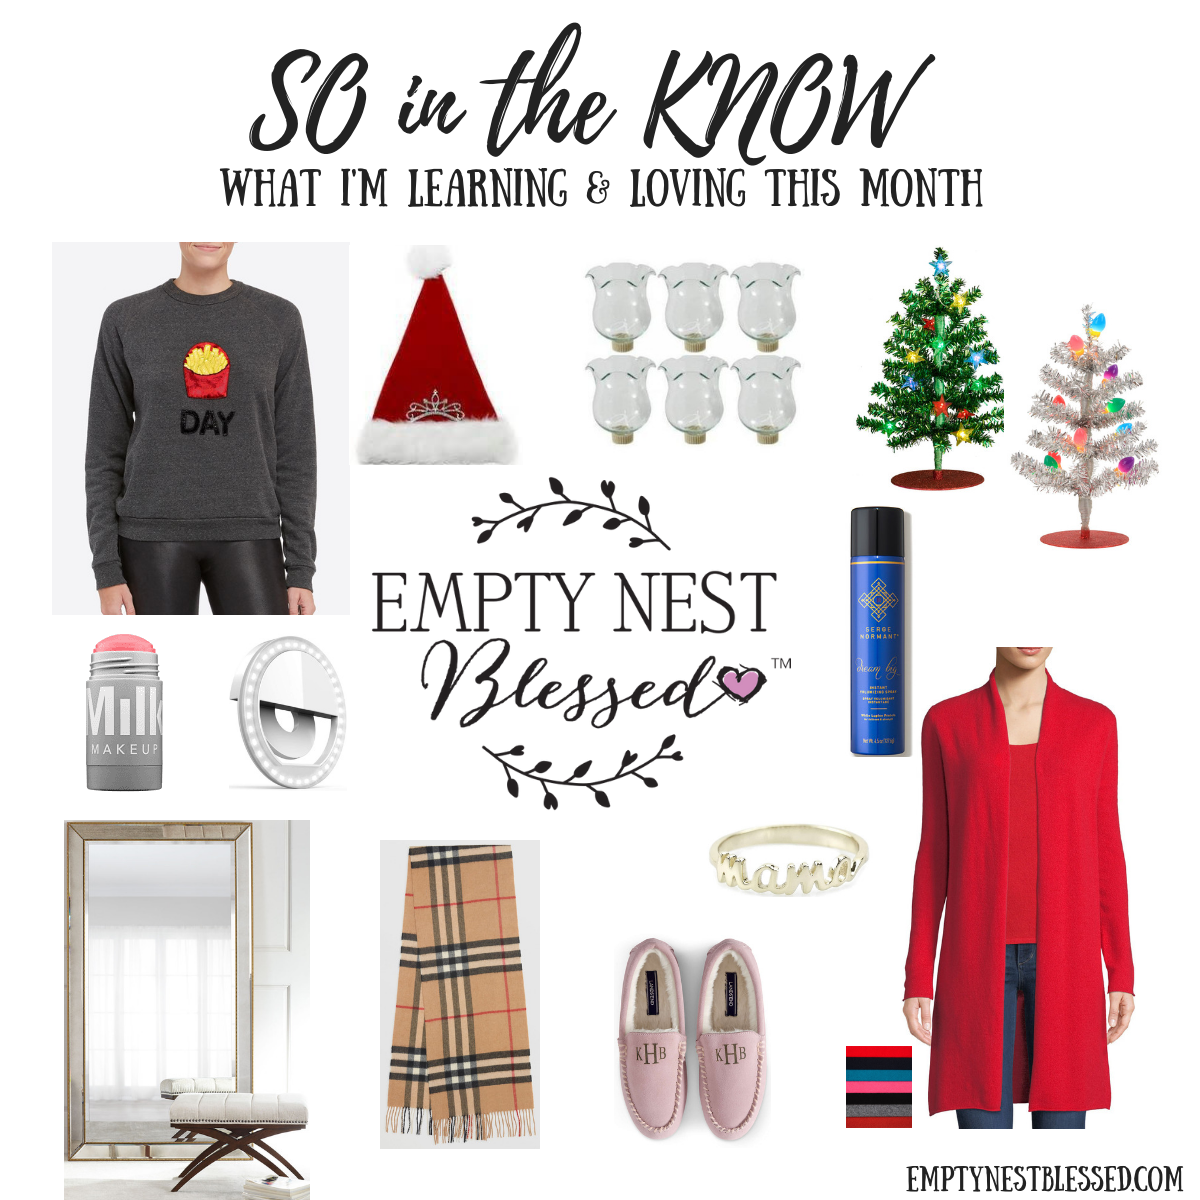 so in the know, empty nest, empty nester, empty nesters, empty nest blessed, empty nest syndrome, self care for empty nesters, empty nest grief, empty nester grief, empty nest blog, empty nester blog, blog for empty nesters, fry day bow & drape sweatshirt, spanx fry day sweatshirt, spanx + bow & drape, orolay down jacket, orolay jacket, lands end monogrammed slippers, selfie light ring, mama script ring, mama ring, gold mama ring, Philips Christmas LED tree, usb Christmas tree, usb led Christmas tree, dream big, dream big volumizing spray, volumizing spray, milk makeup, milk cream blush, milk blush, milk lip and cheek, glass candle cup, clear glass candle cup, santa hat with tiara, tiara santa hat, beaded floor mirror, aldina floor mirror, floor mirror, burberry cashmere scarf, burberry scarf, cashmere duster, red cashmere duster, neiman marcus cashmere duster, parenting high schoolers blog, skinny taste blog, iphone lost mode, lost iphone